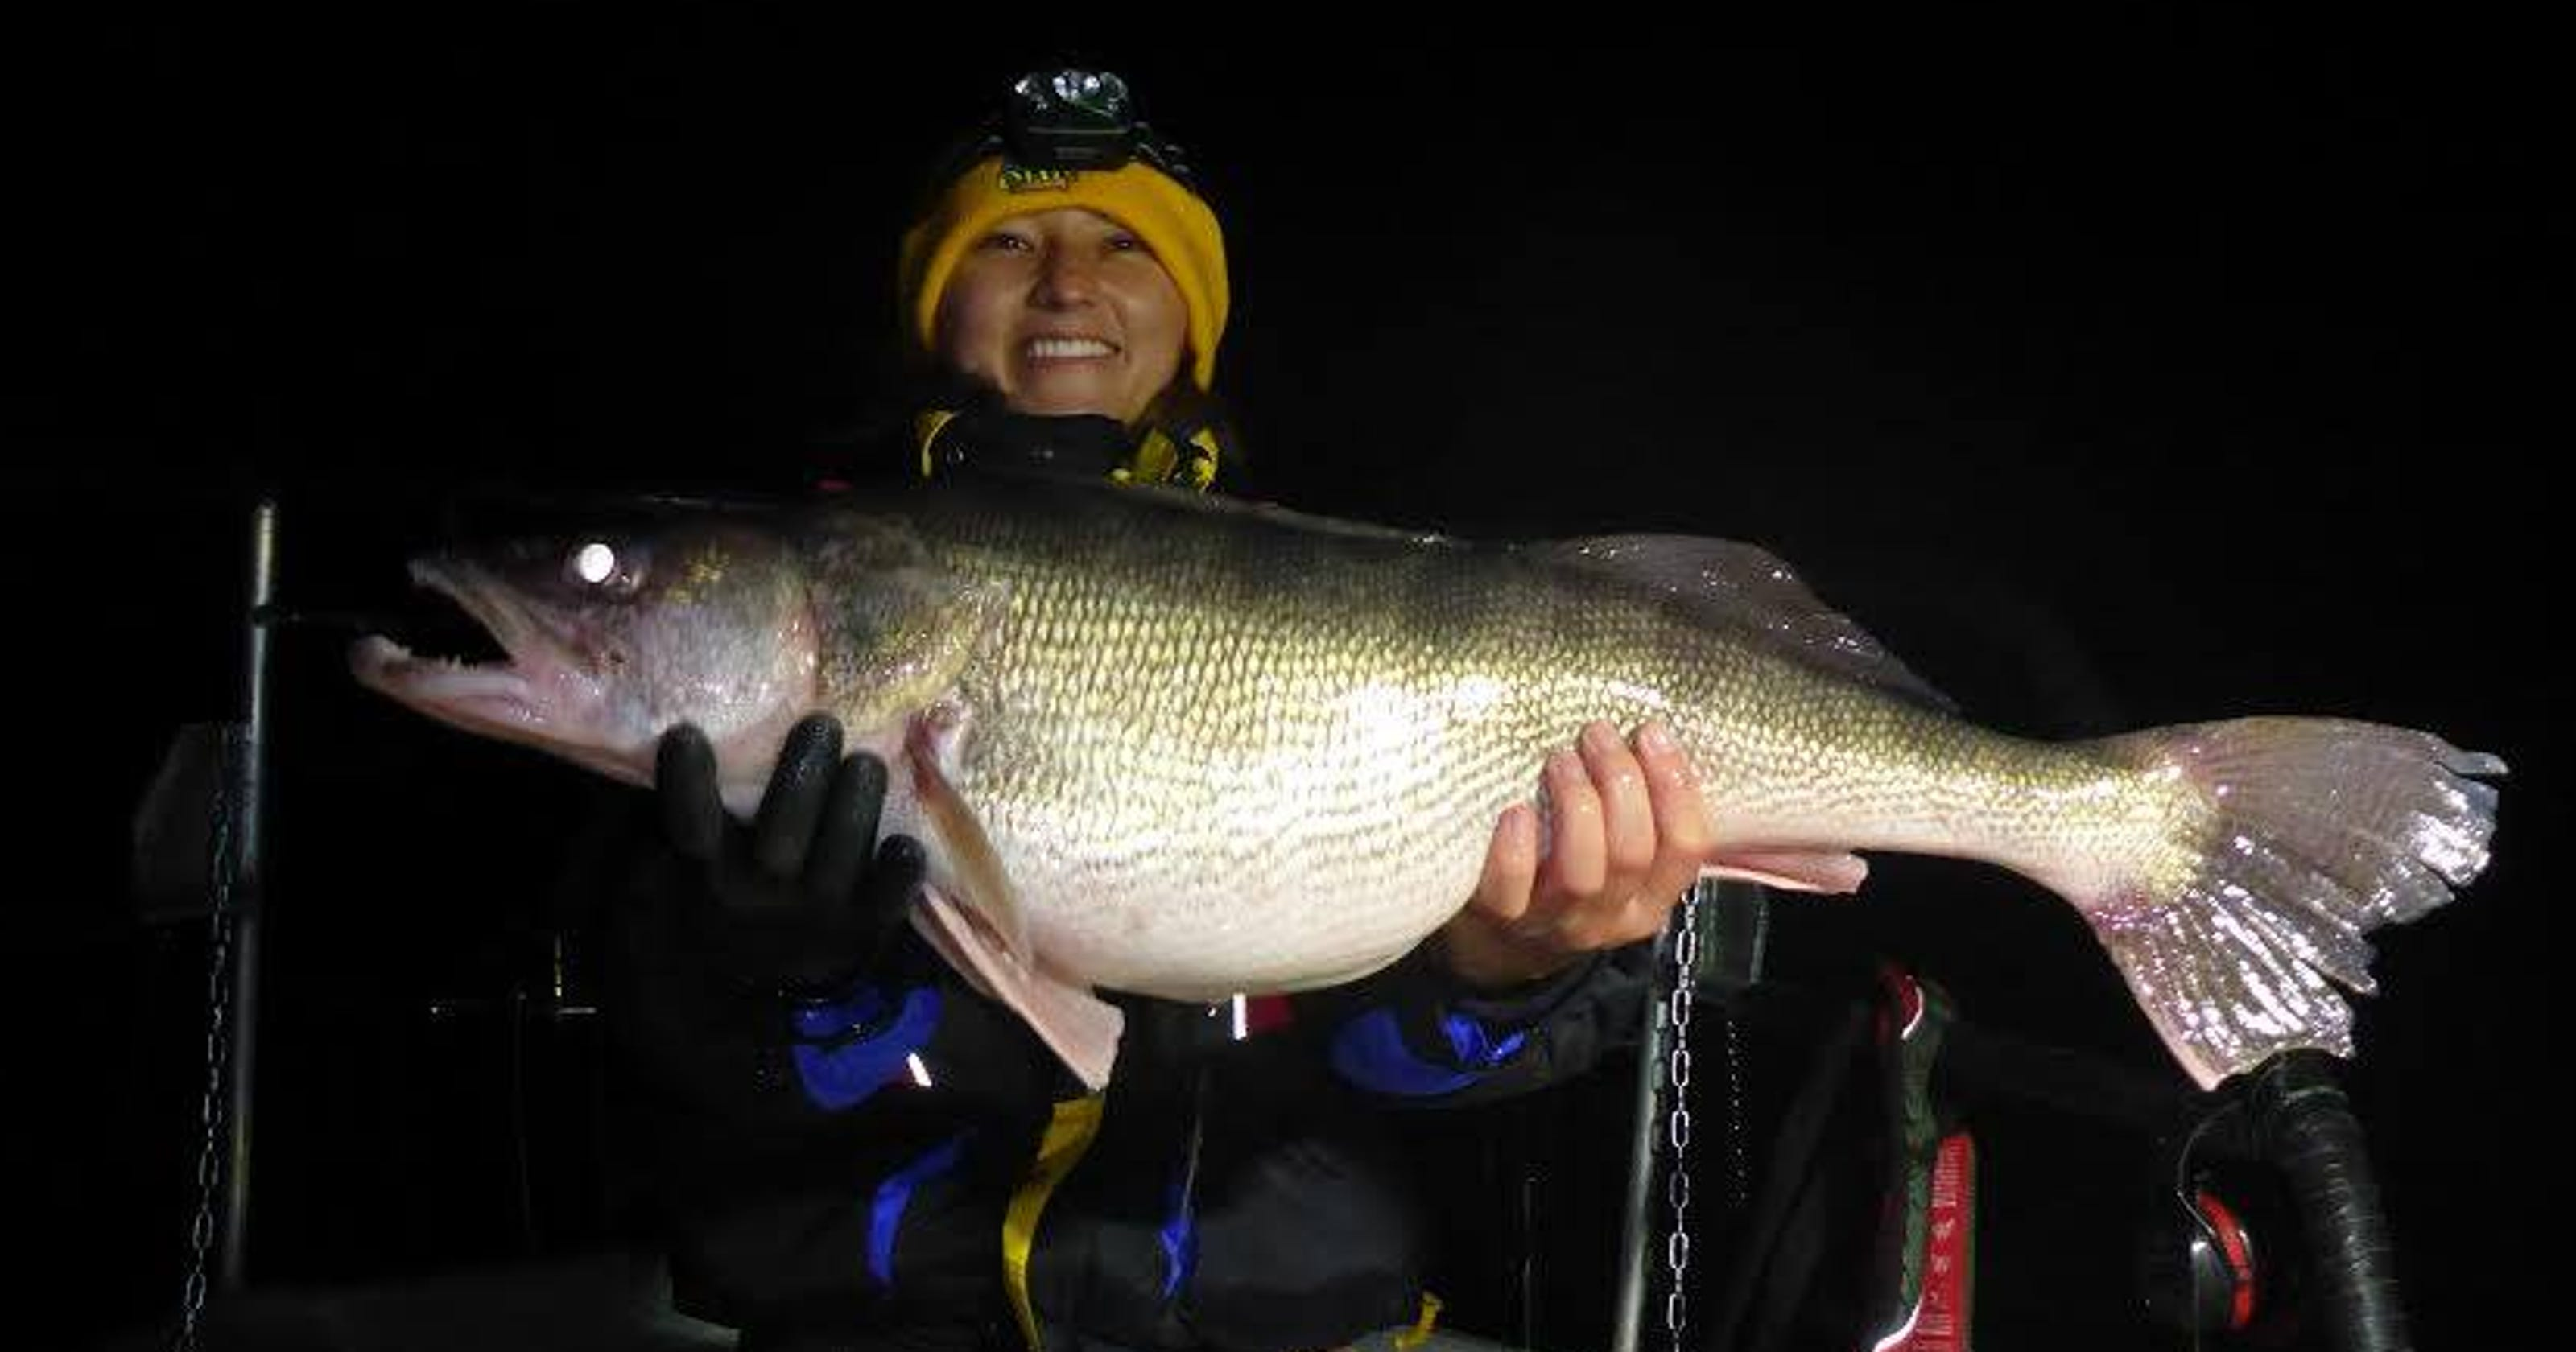 This monster fish was caught in Iowa, but it wasn't the